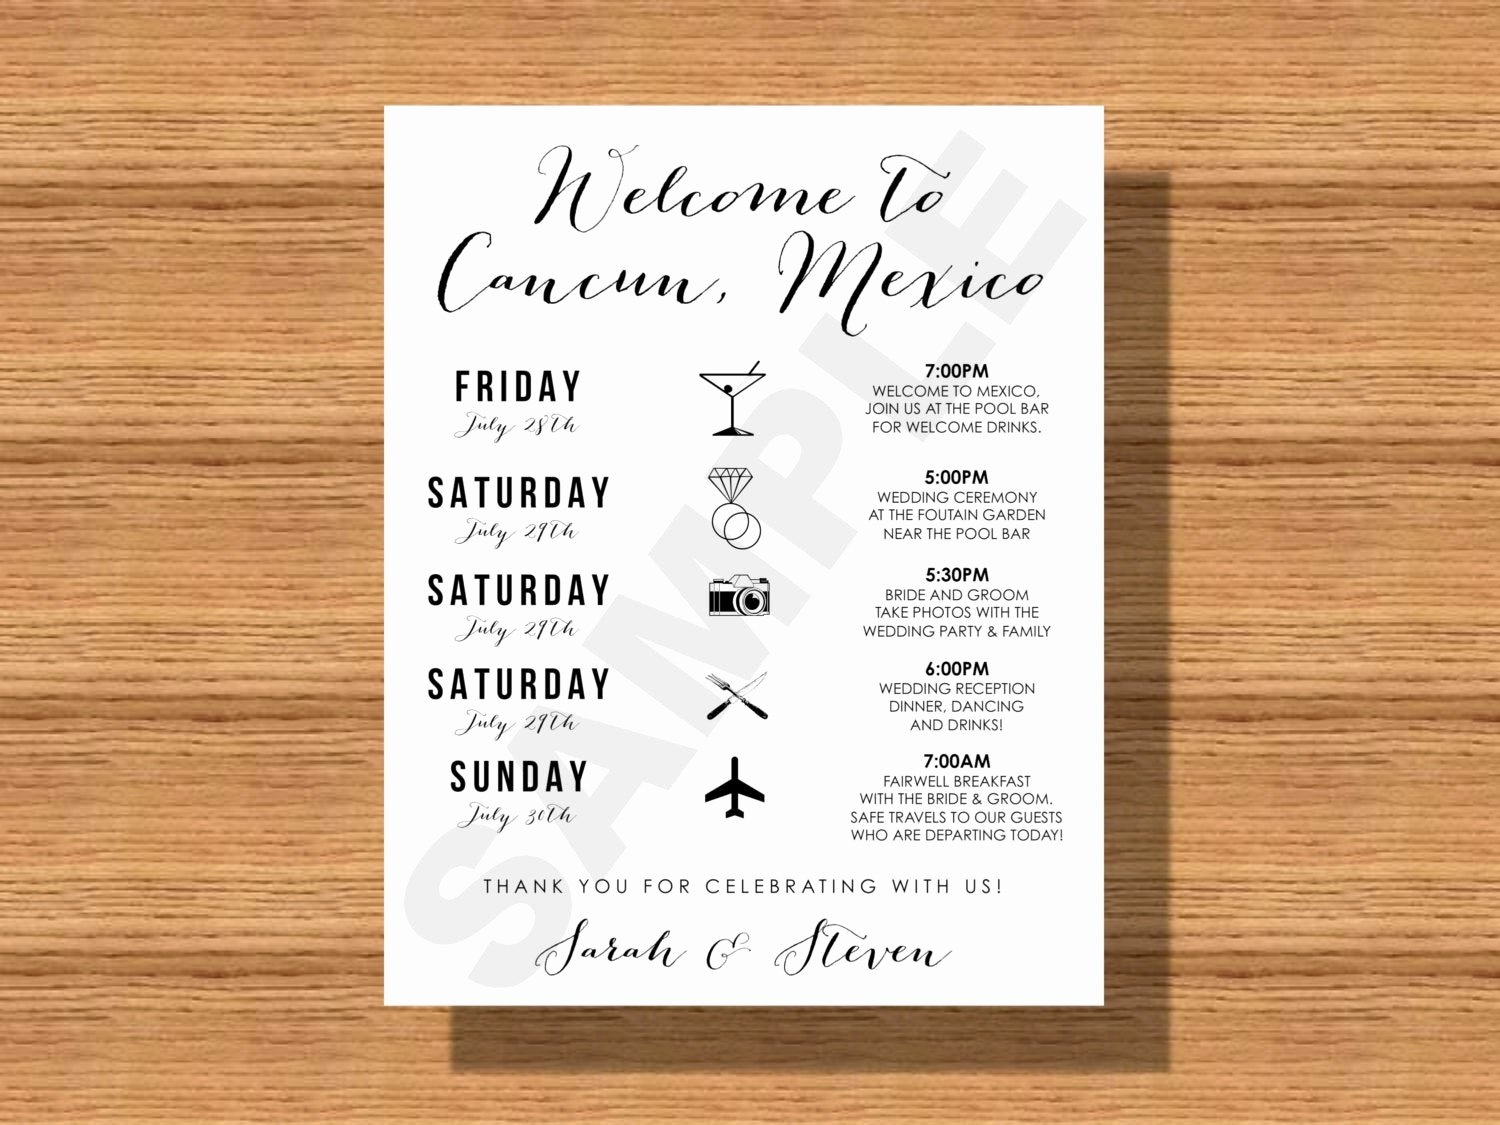 Destination Wedding Itinerary Template Lovely Destination Wedding Weekend Itinerary Wedding Schedule Of